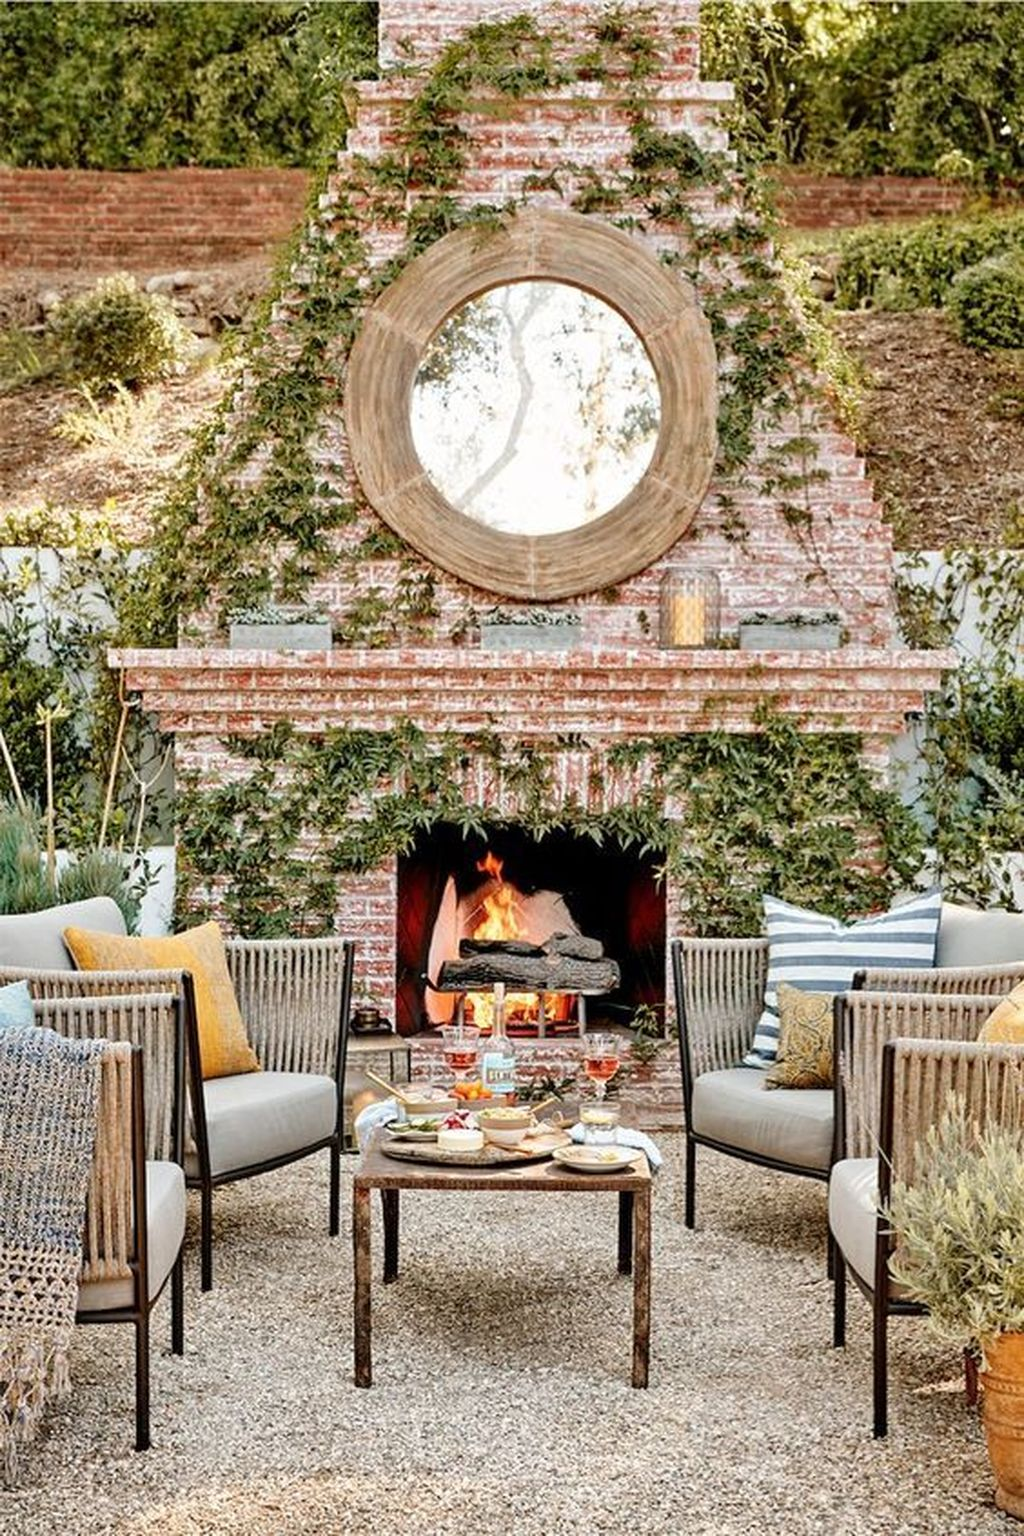 The Best Backyard Fireplace Design Ideas You Must Have 32